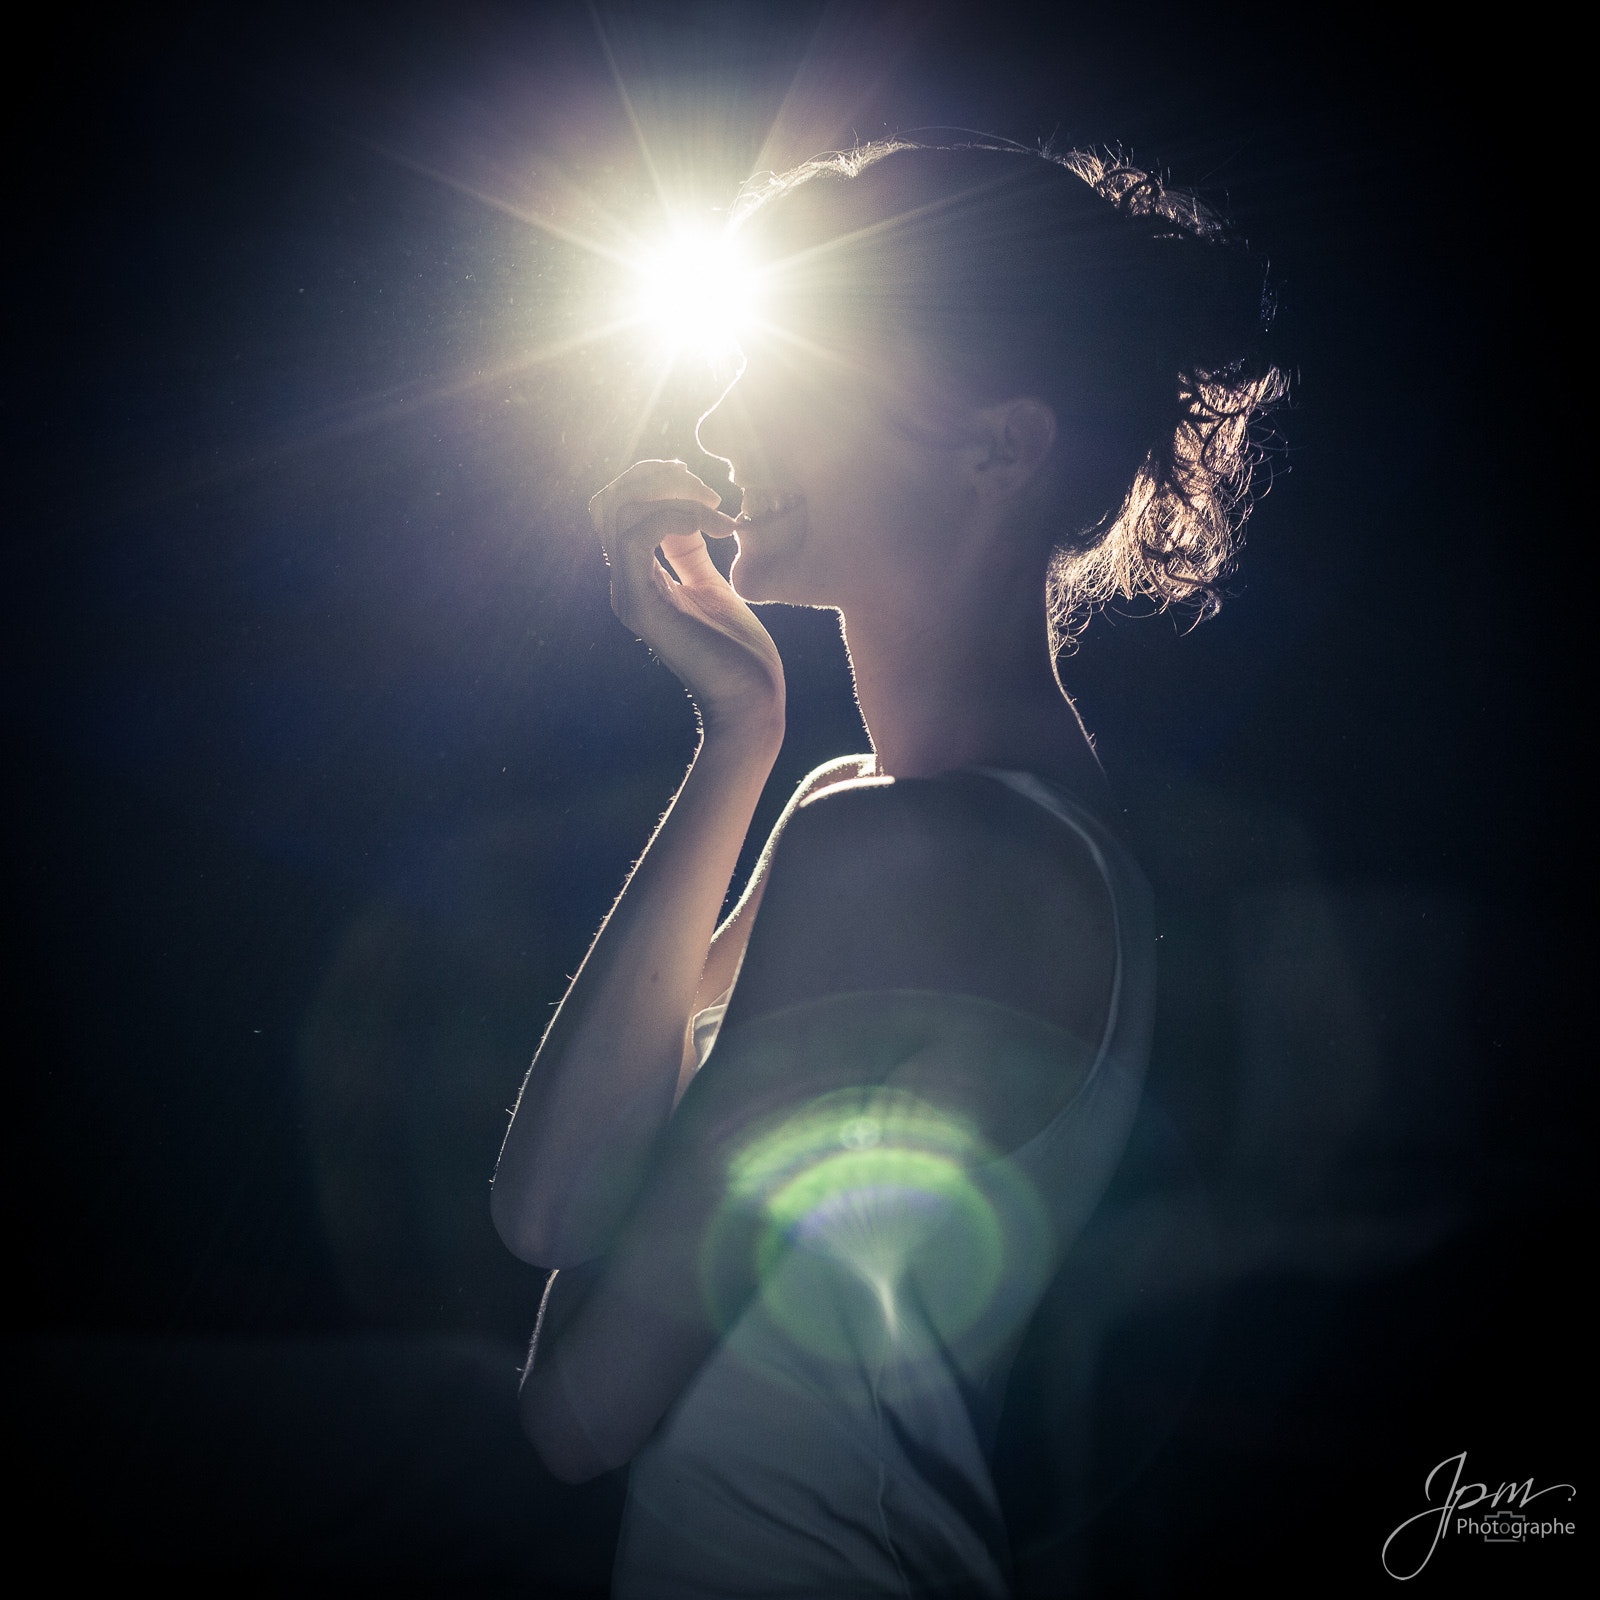 Photograph In the light by J P M on 500px